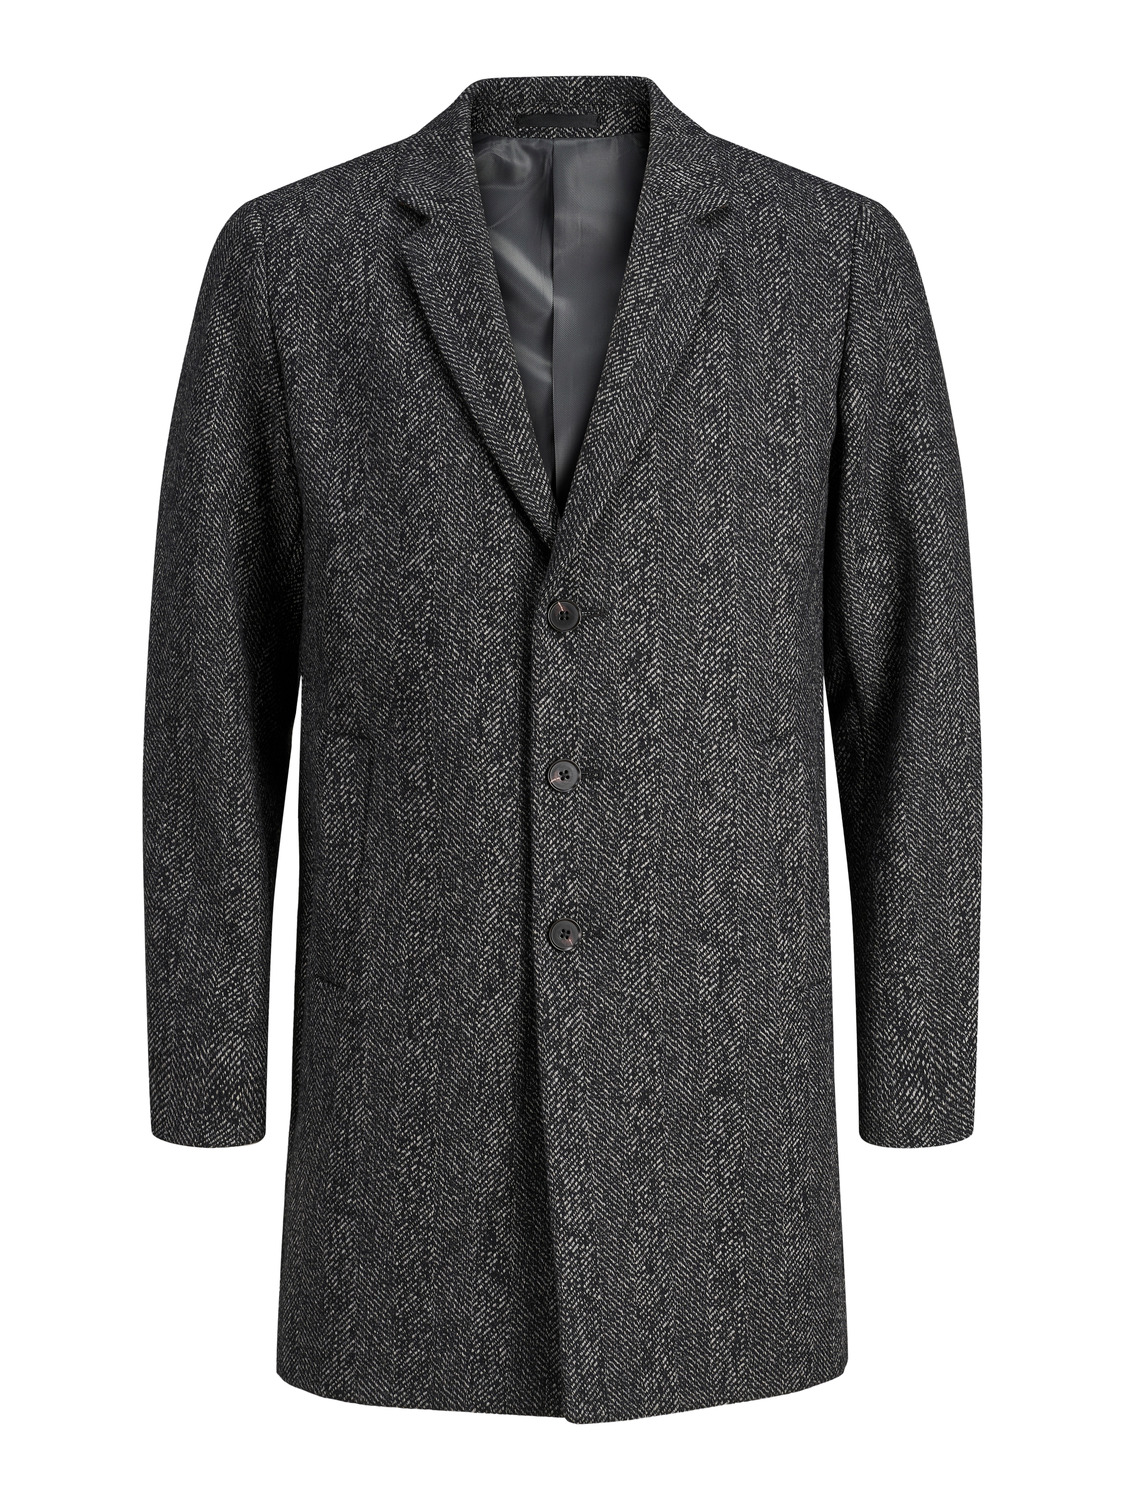 JJEMOULDER WOOL COAT STS